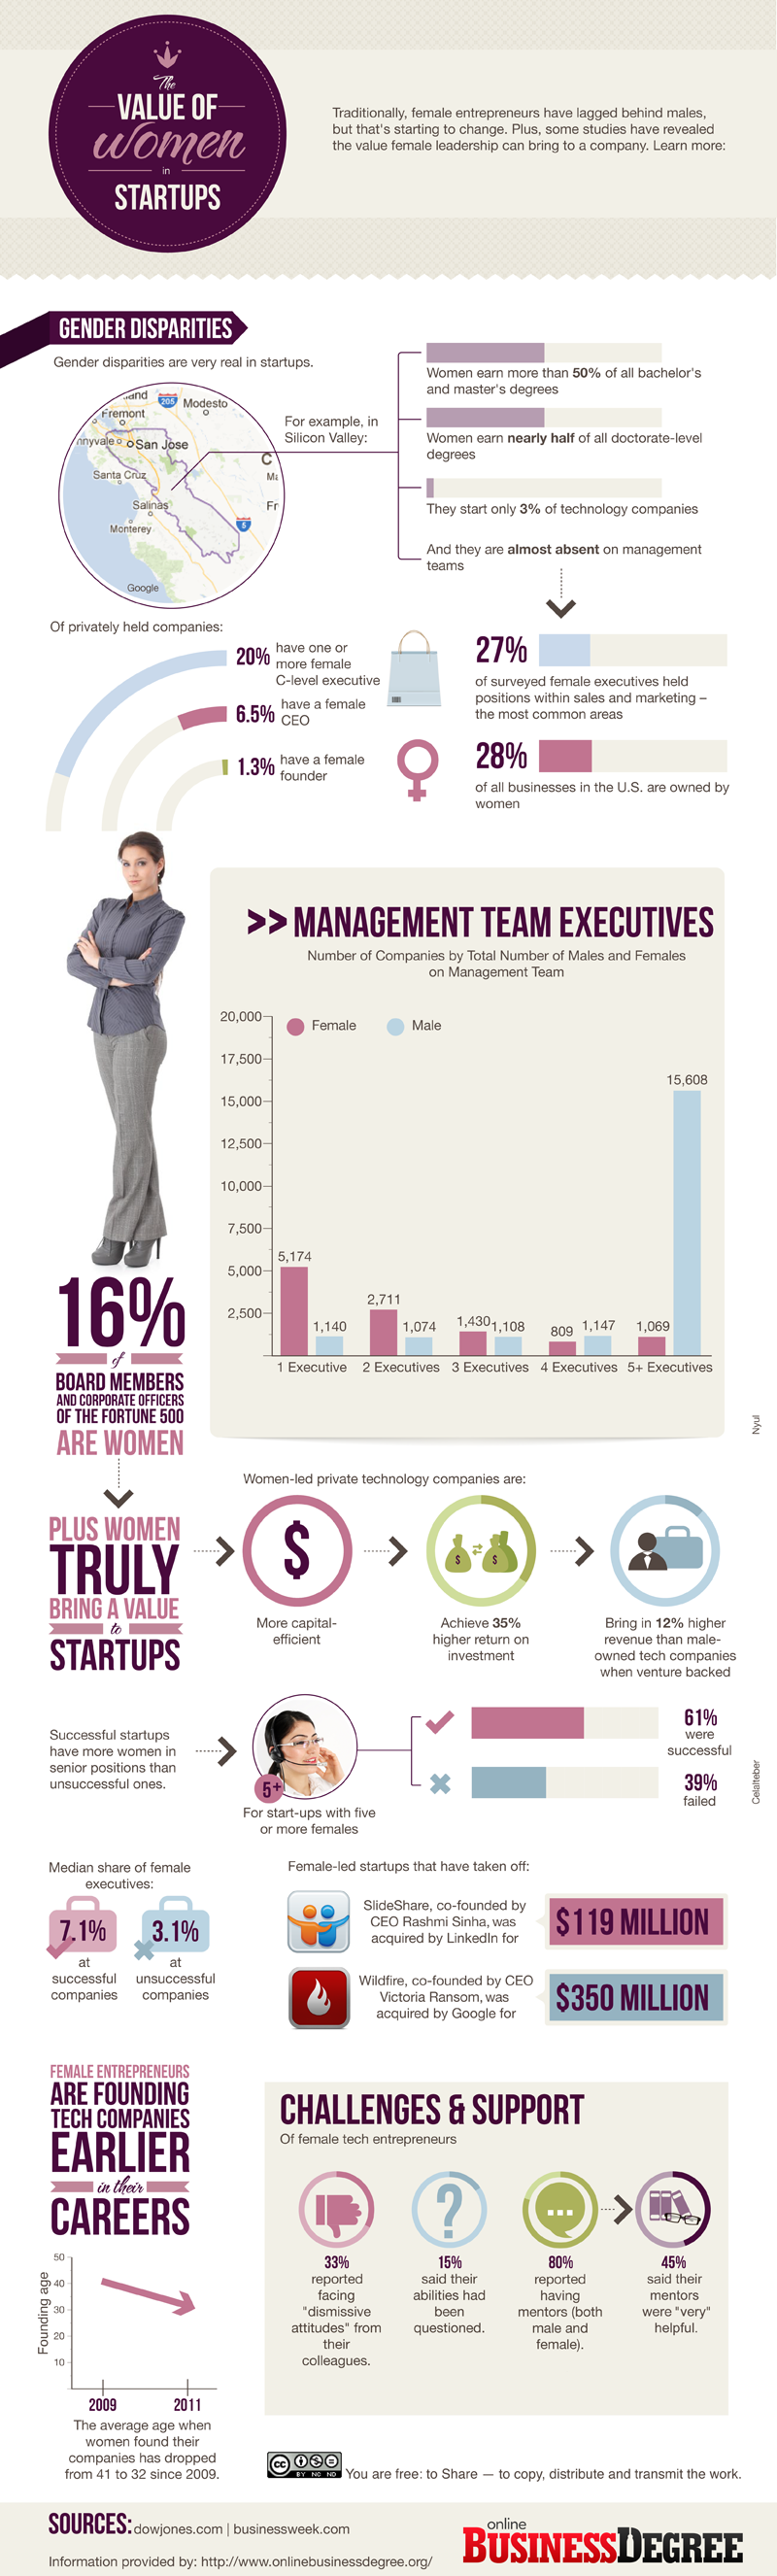 Women Entrepreneurs and Startup Statistics